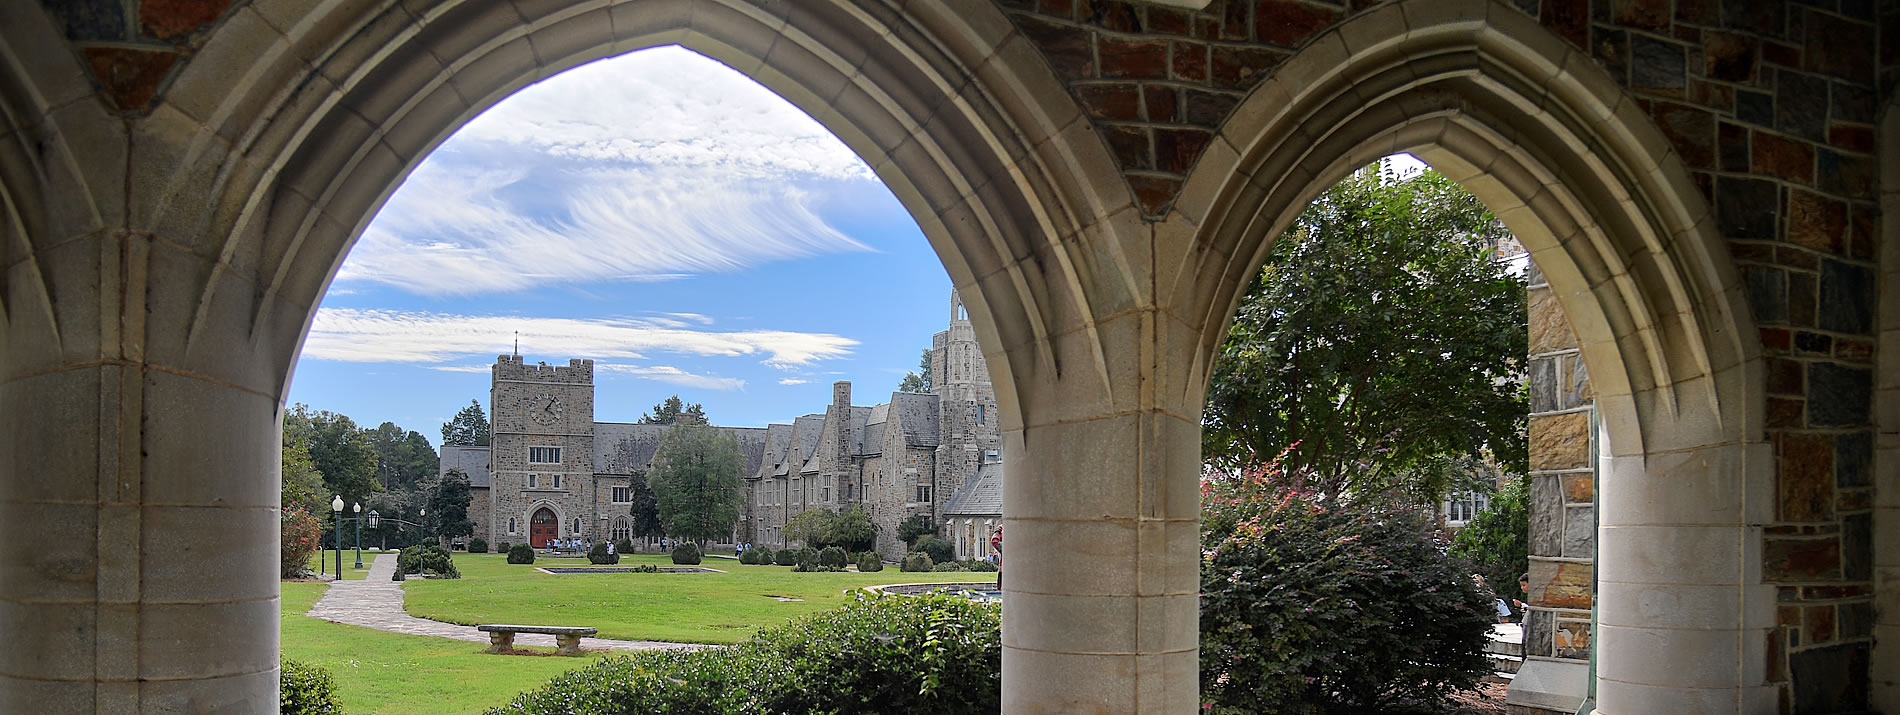 Berry College 27,000 Acres